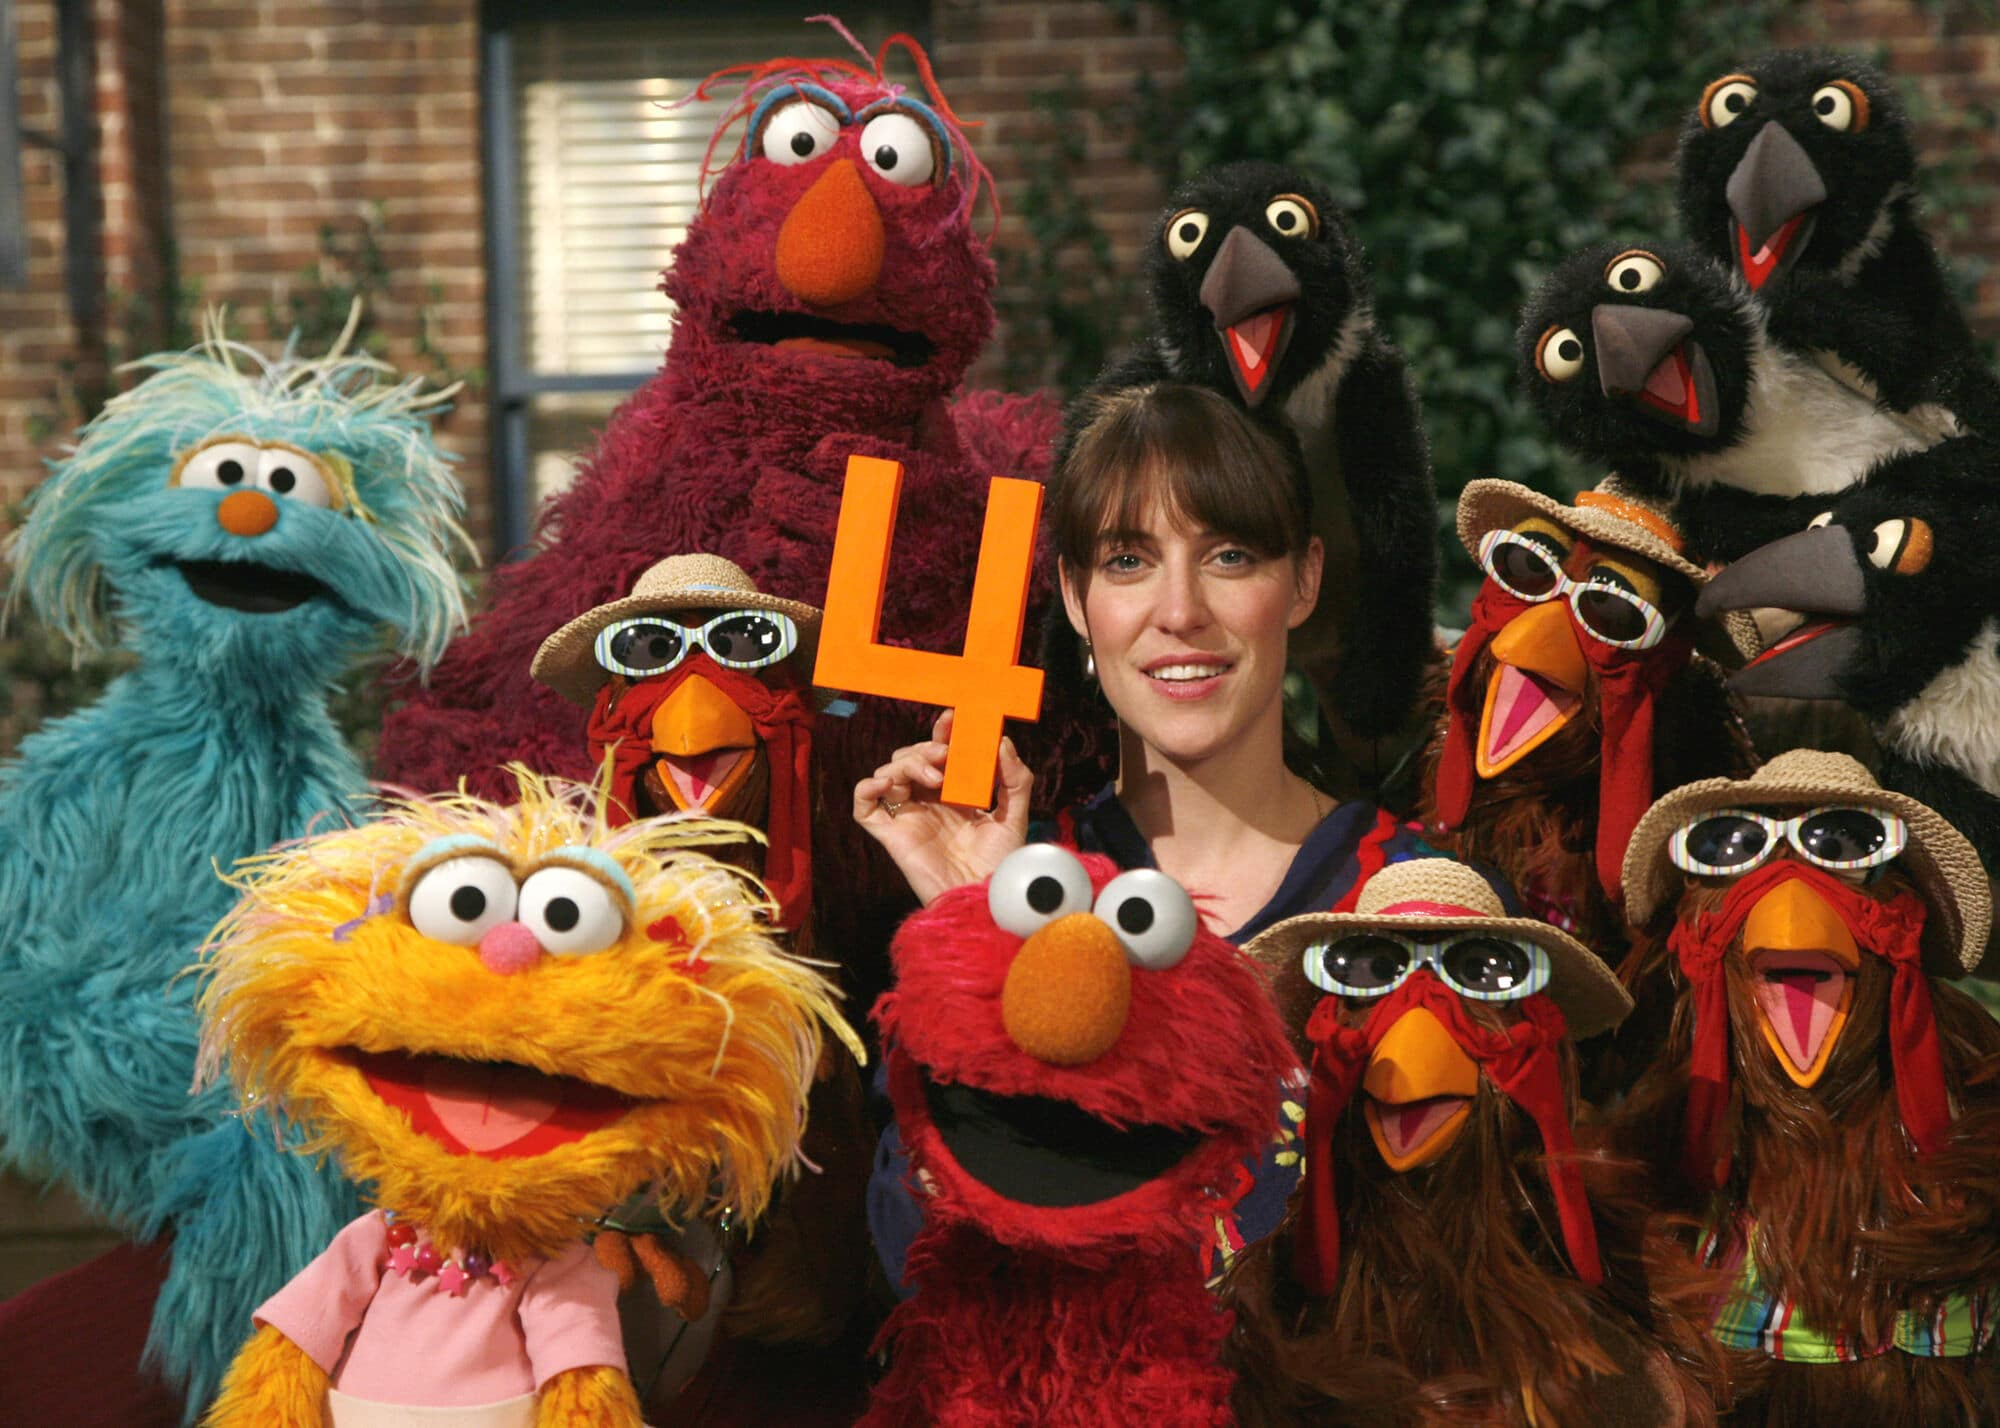 feist sings 1,2,3,4 on sesame street